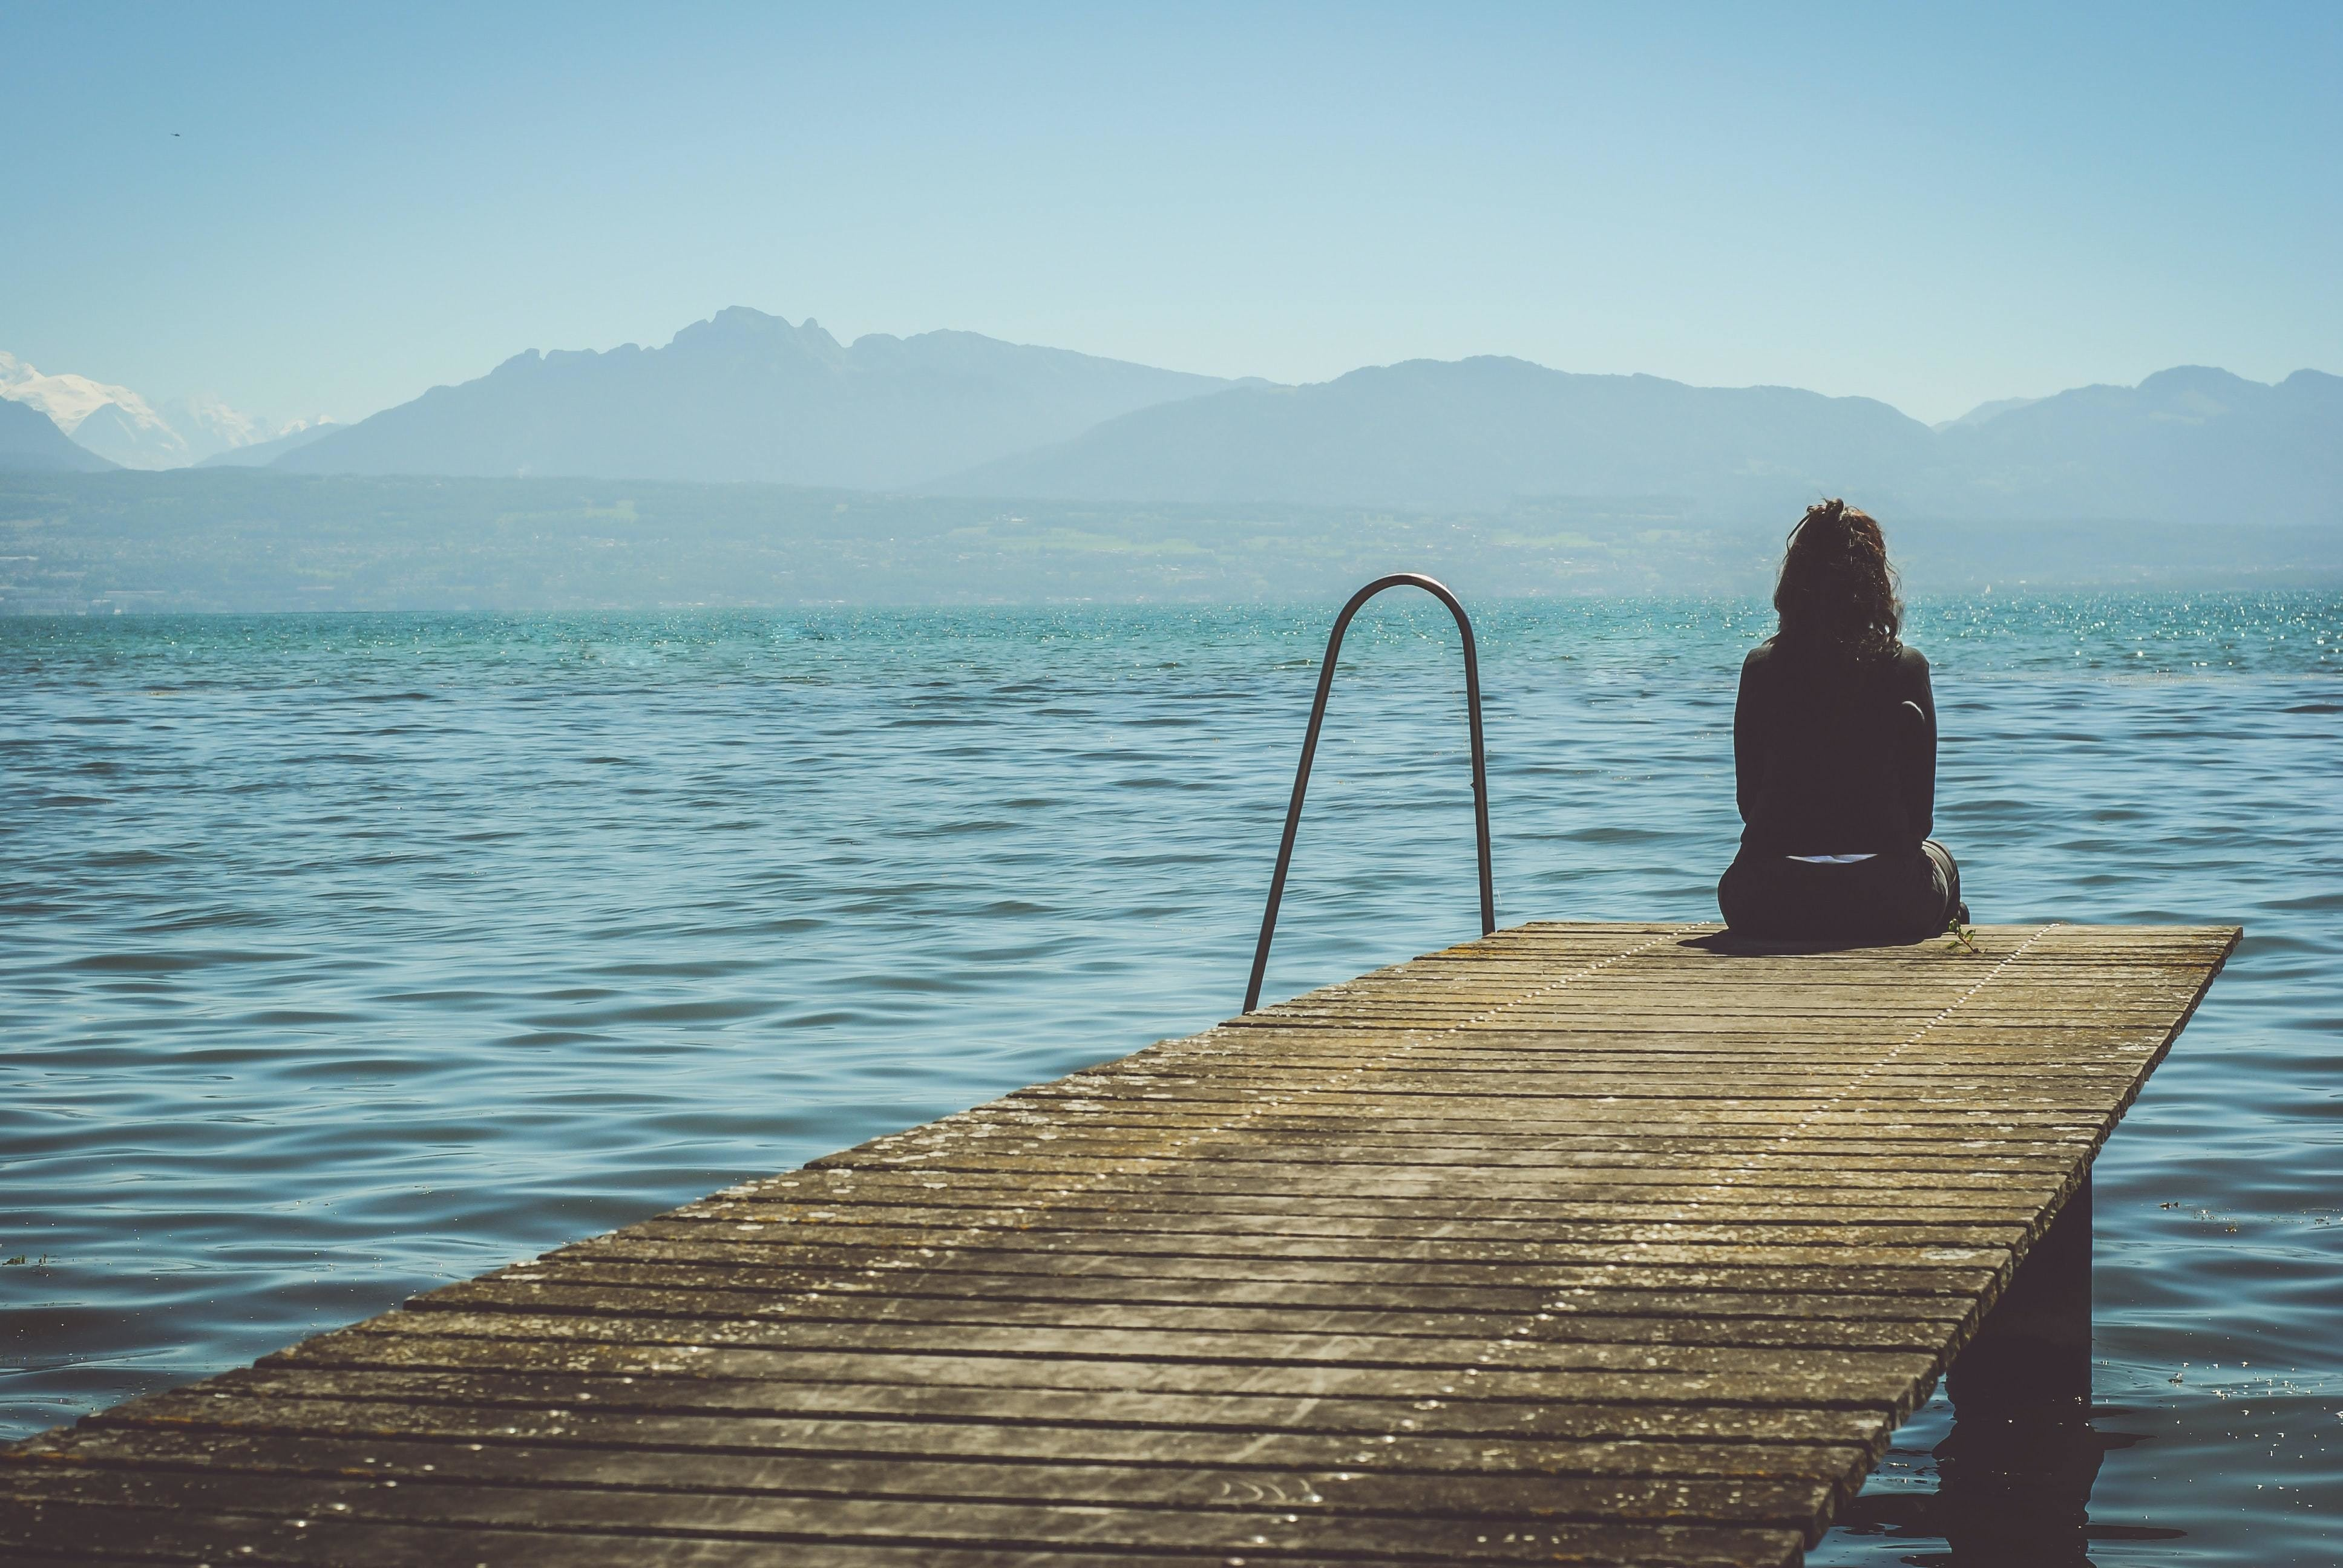 A woman sitting at a dock, looking at the water.